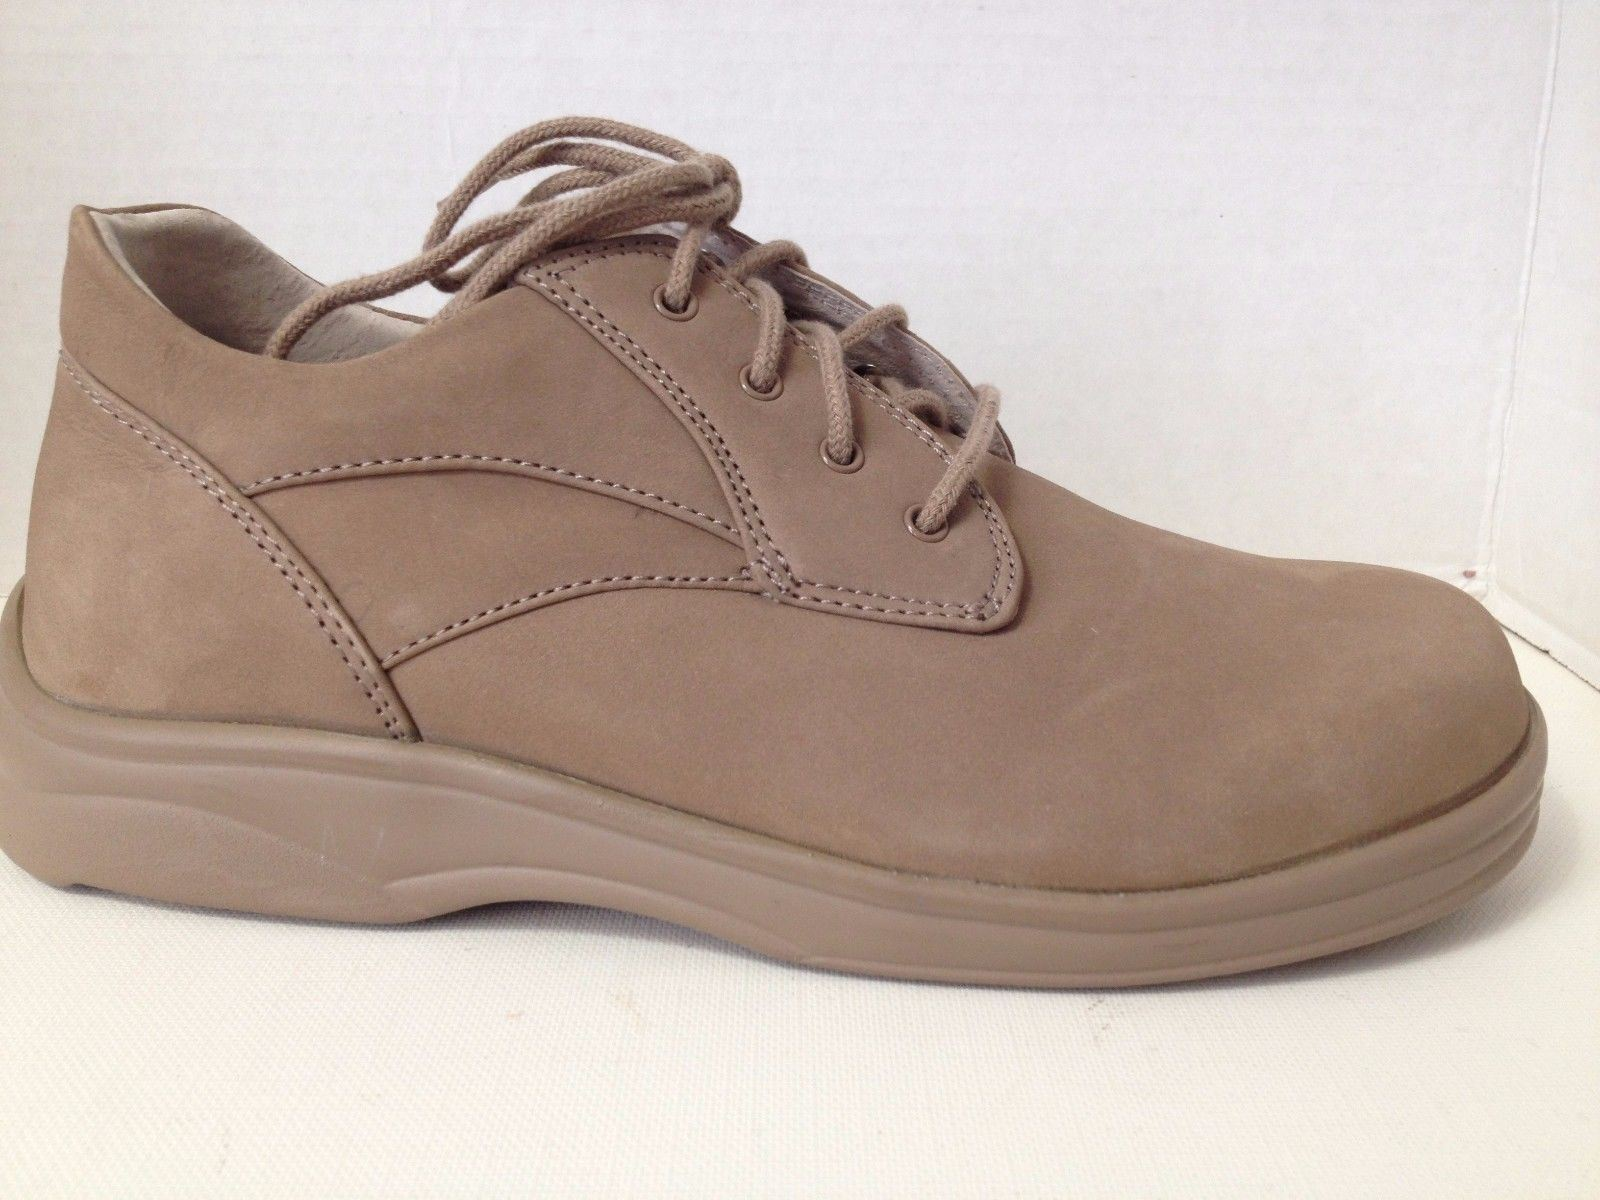 Apex Ariya Chaussures femme taille 5.5 Large Y590W beige à lacets 5 1 2 W